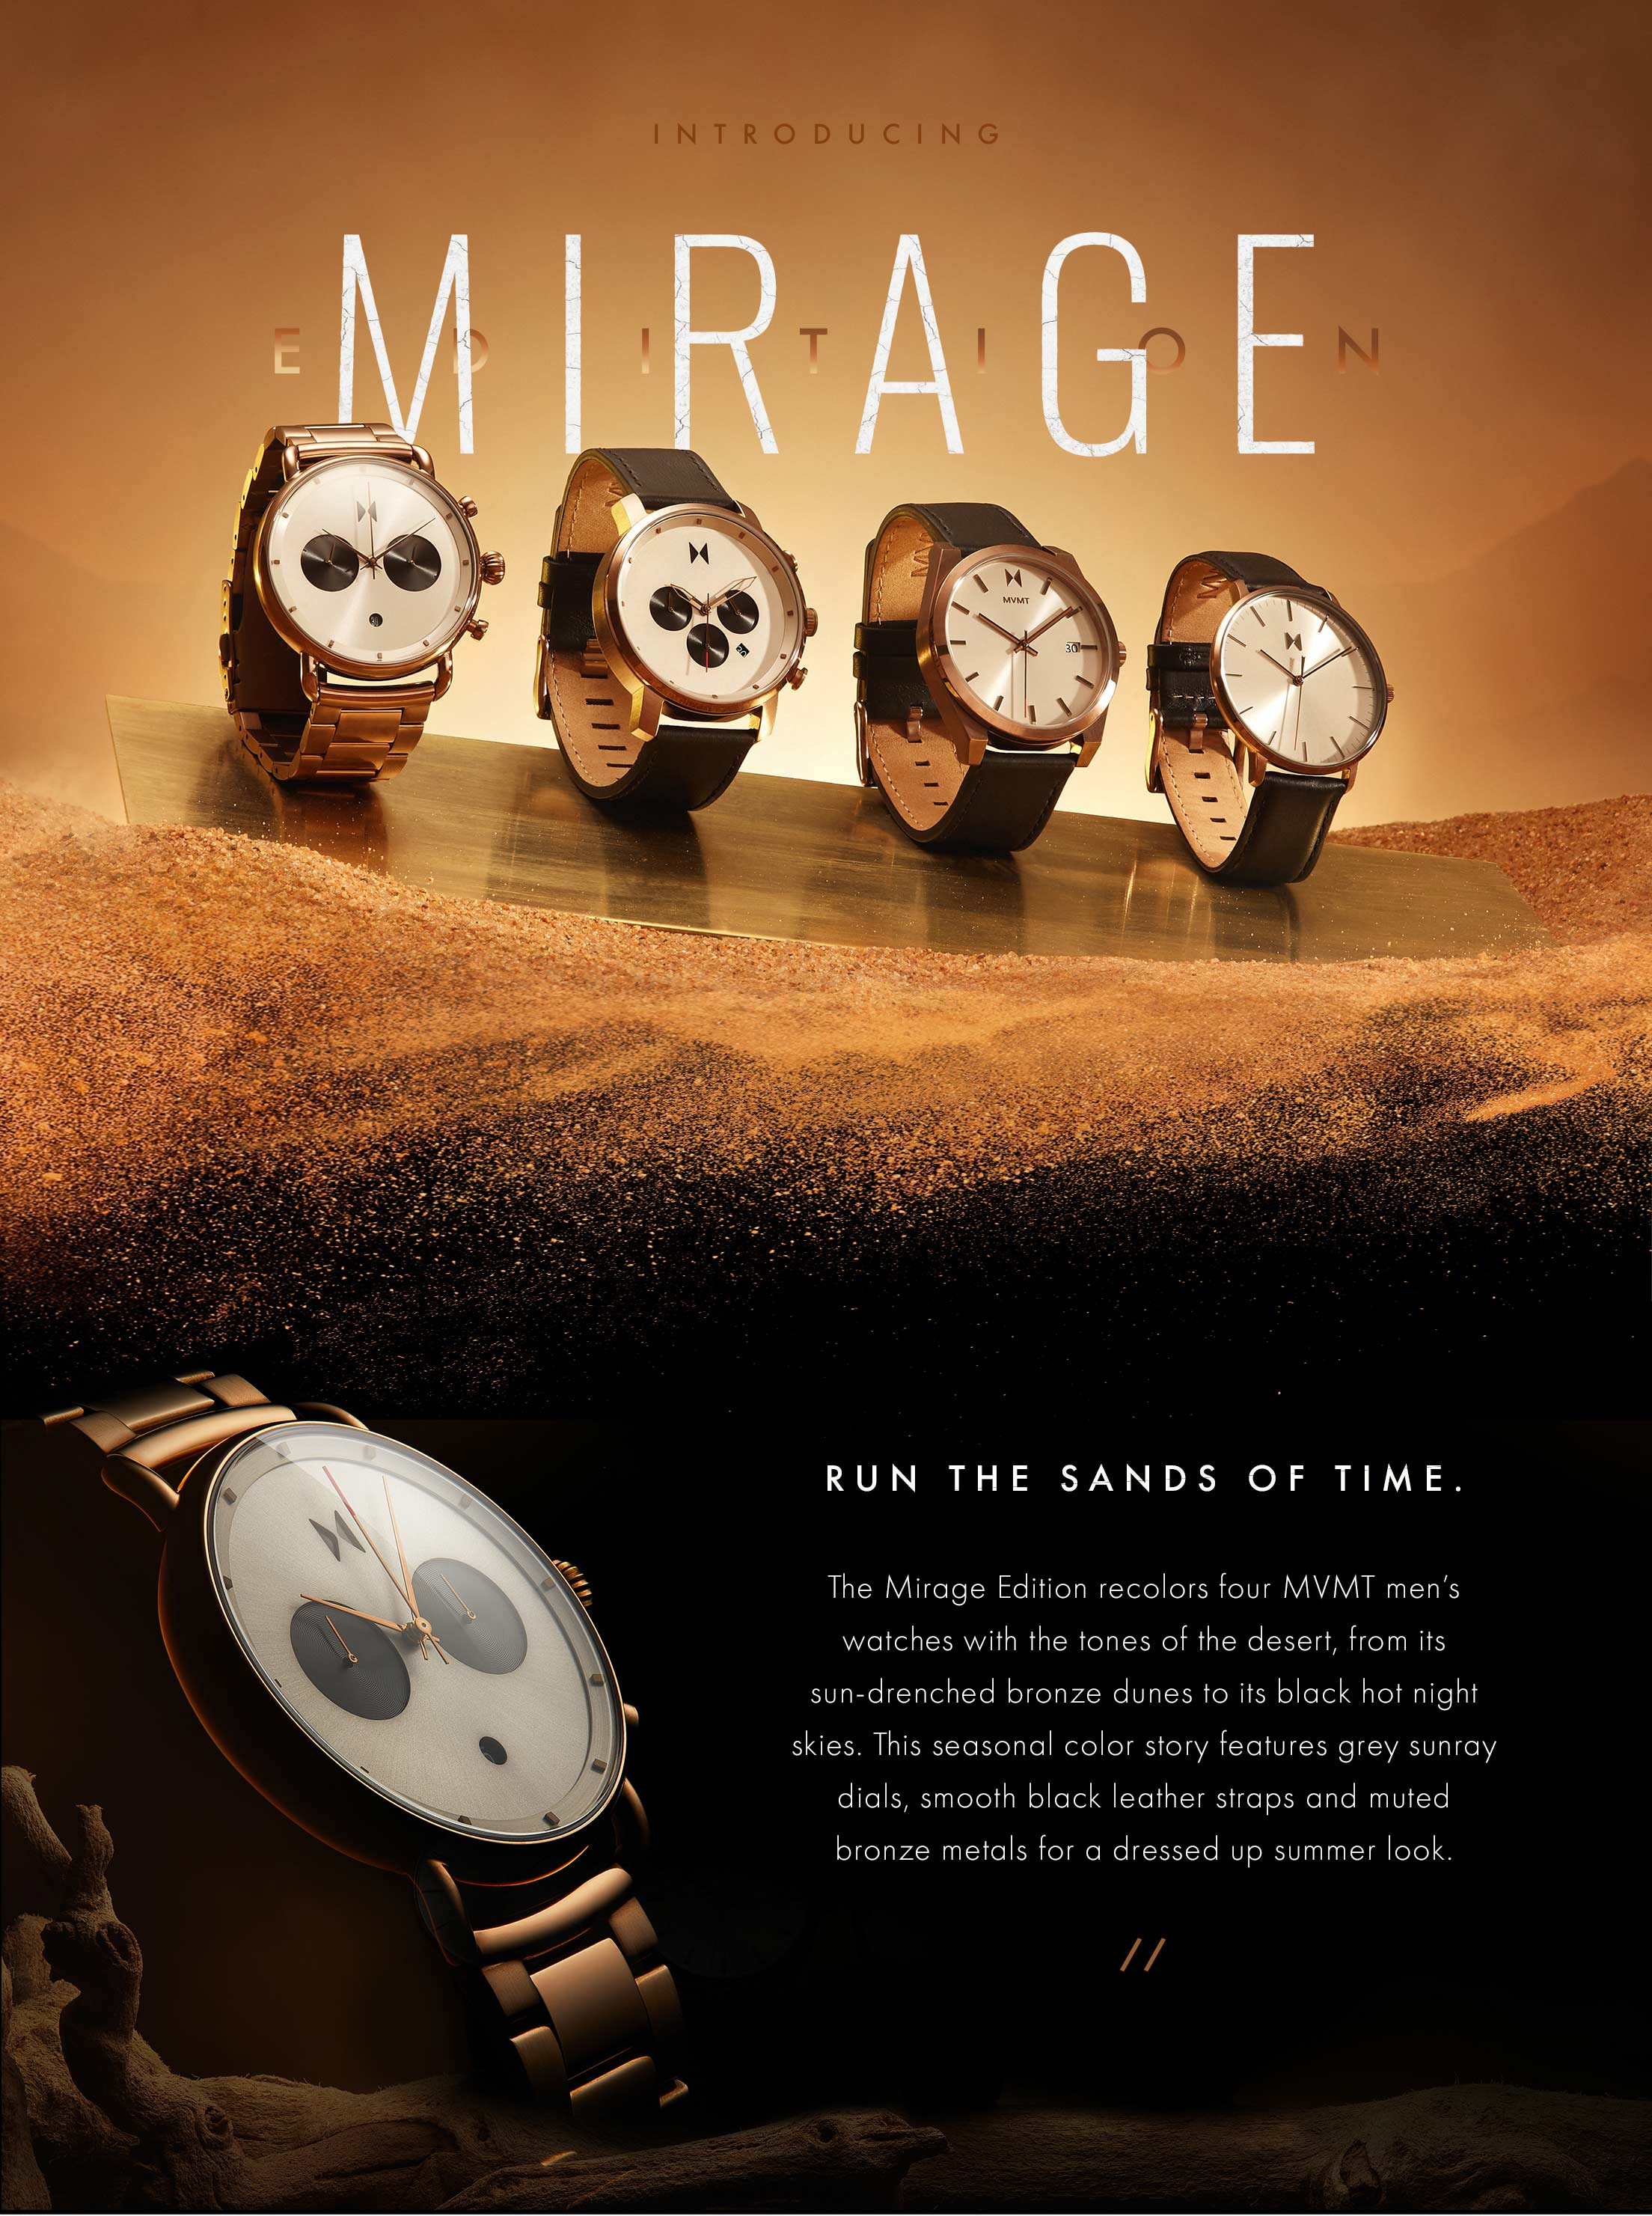 Introducing Mirage Edition